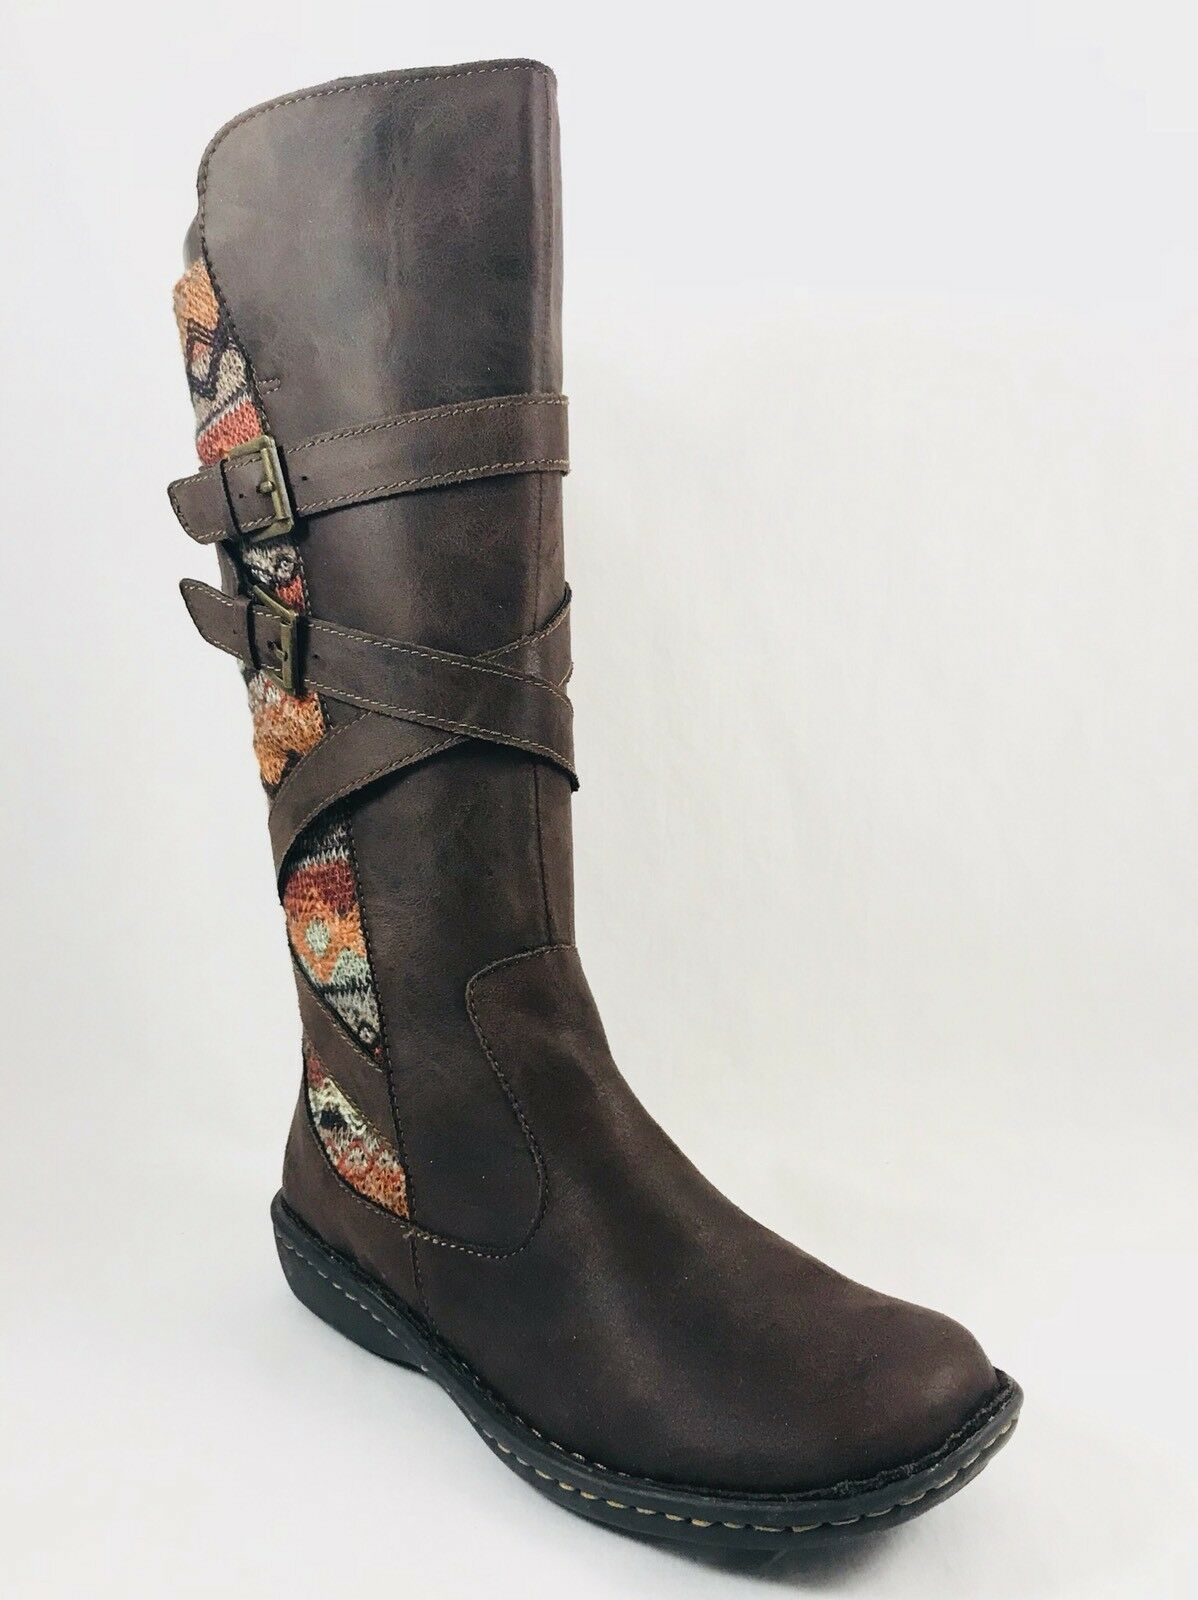 Born Concepts B.O.C. Marghera Mid Boots Side Zip Dark Brown Womens Sz 6.5